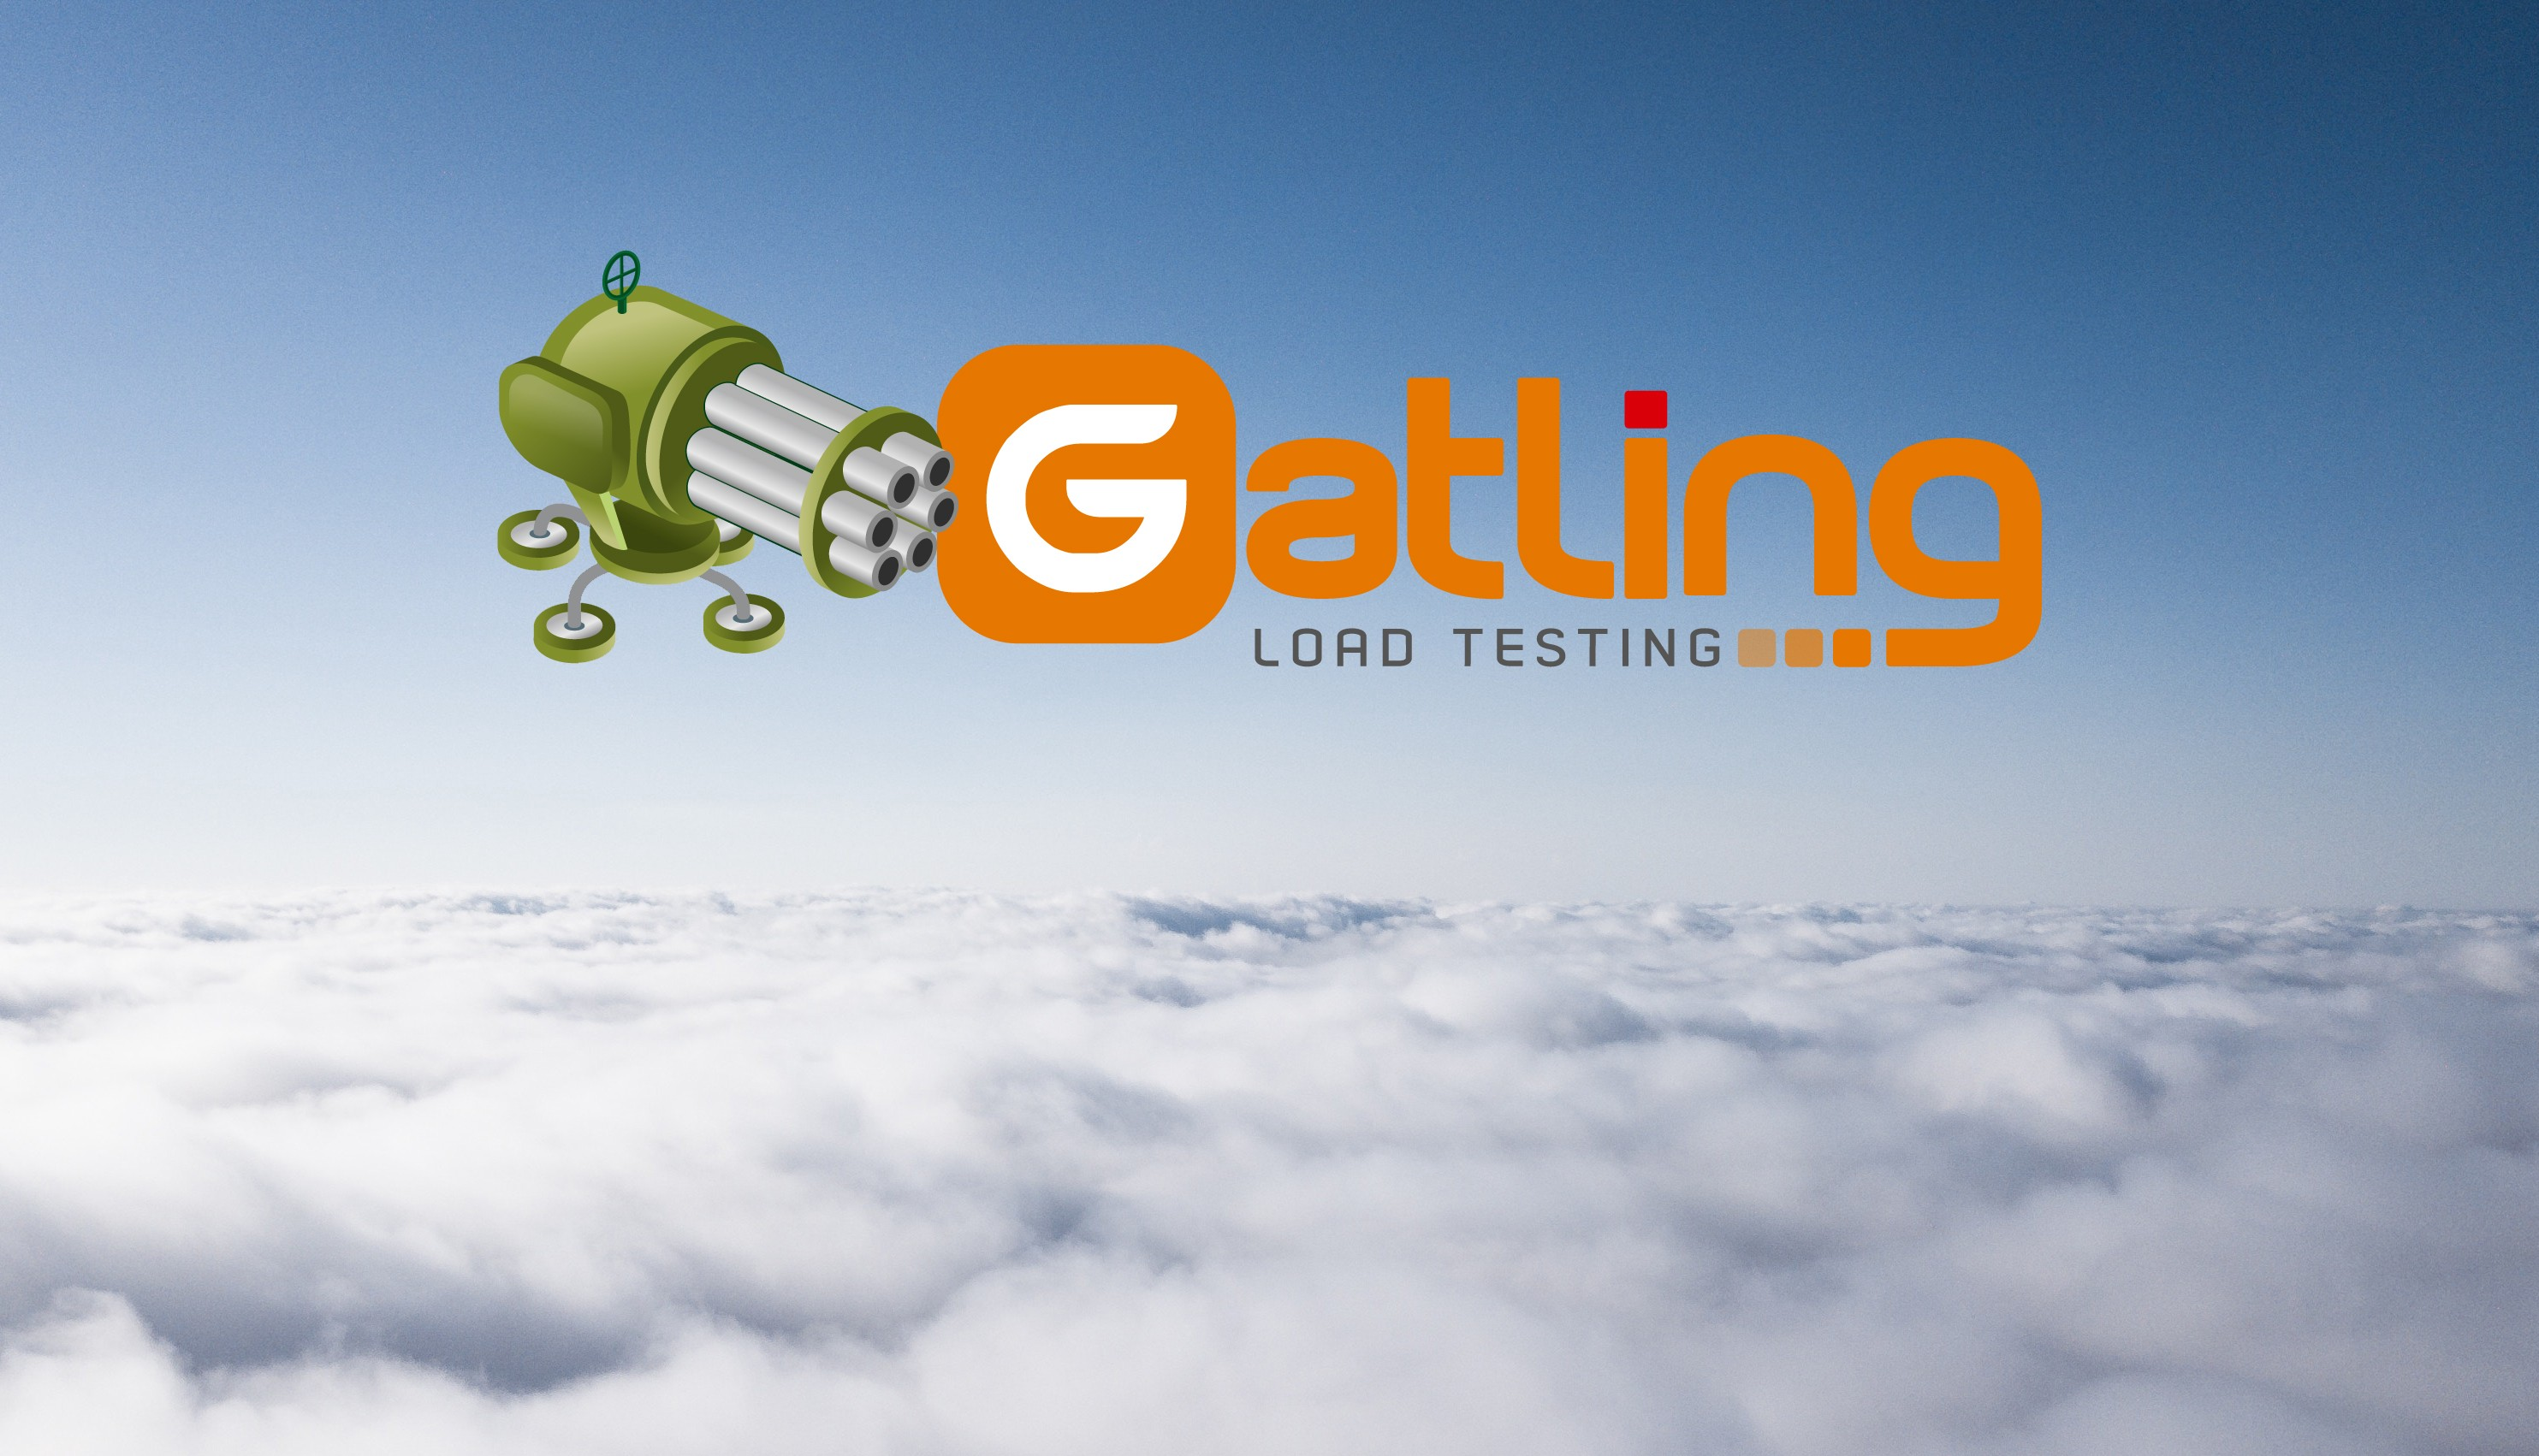 How we leveraged our cloud infrastructure to scale Gatling